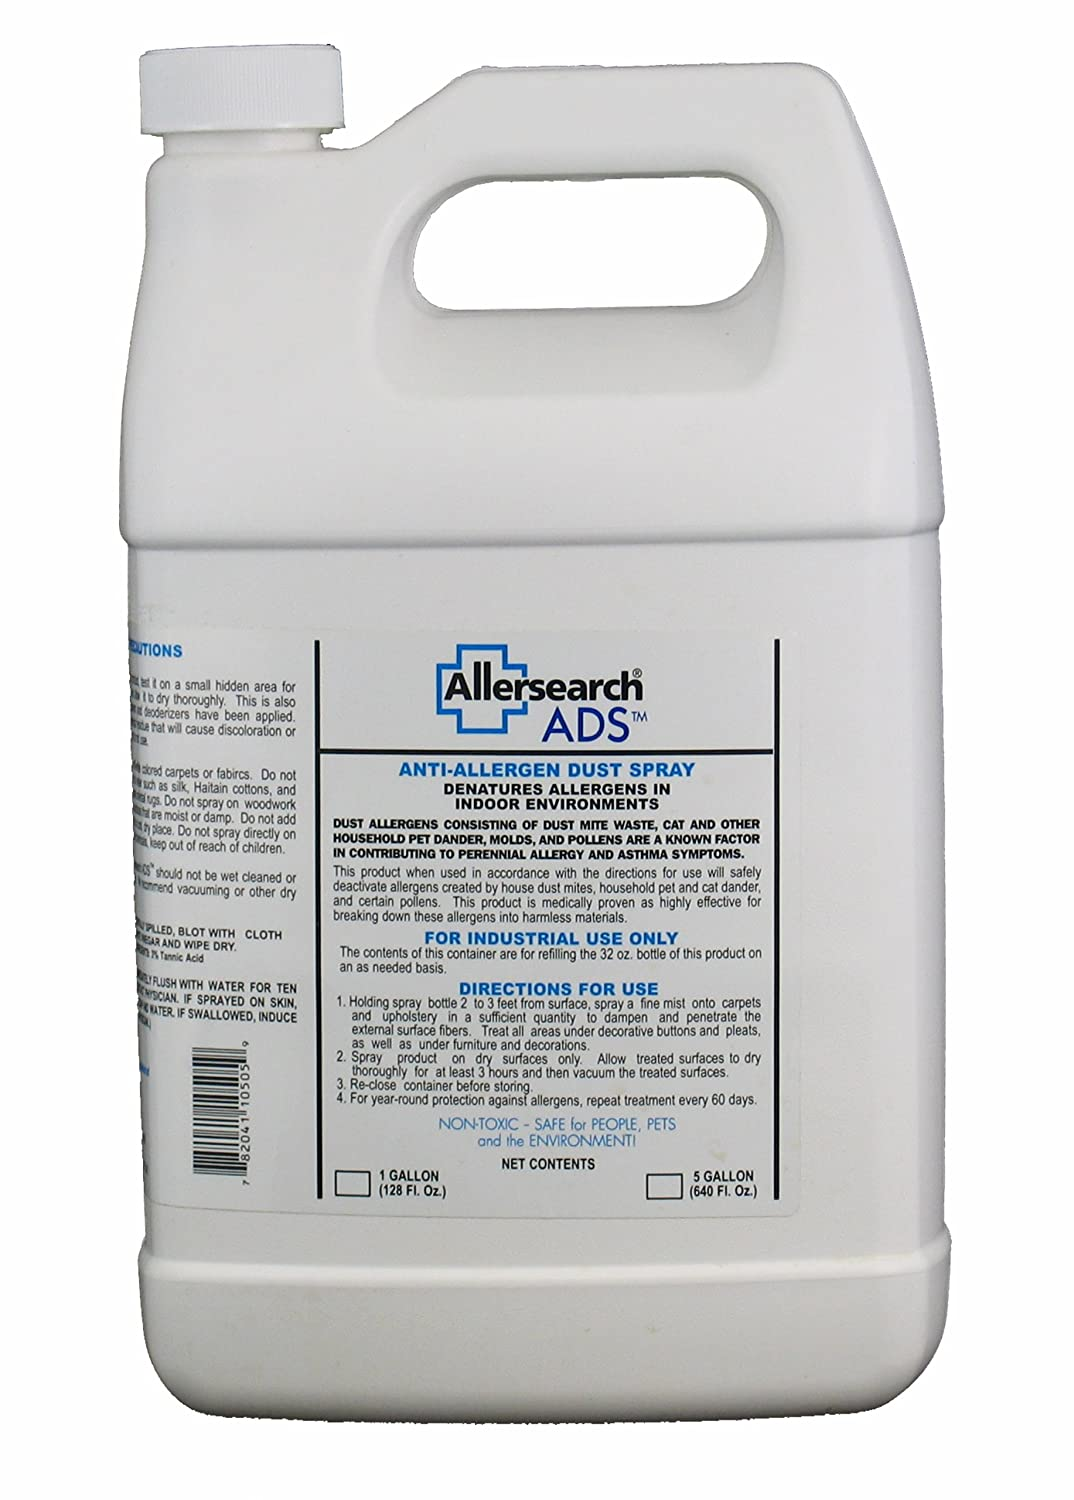 Allersearch ADS Anti-Allergen Dust Spray 128 oz.